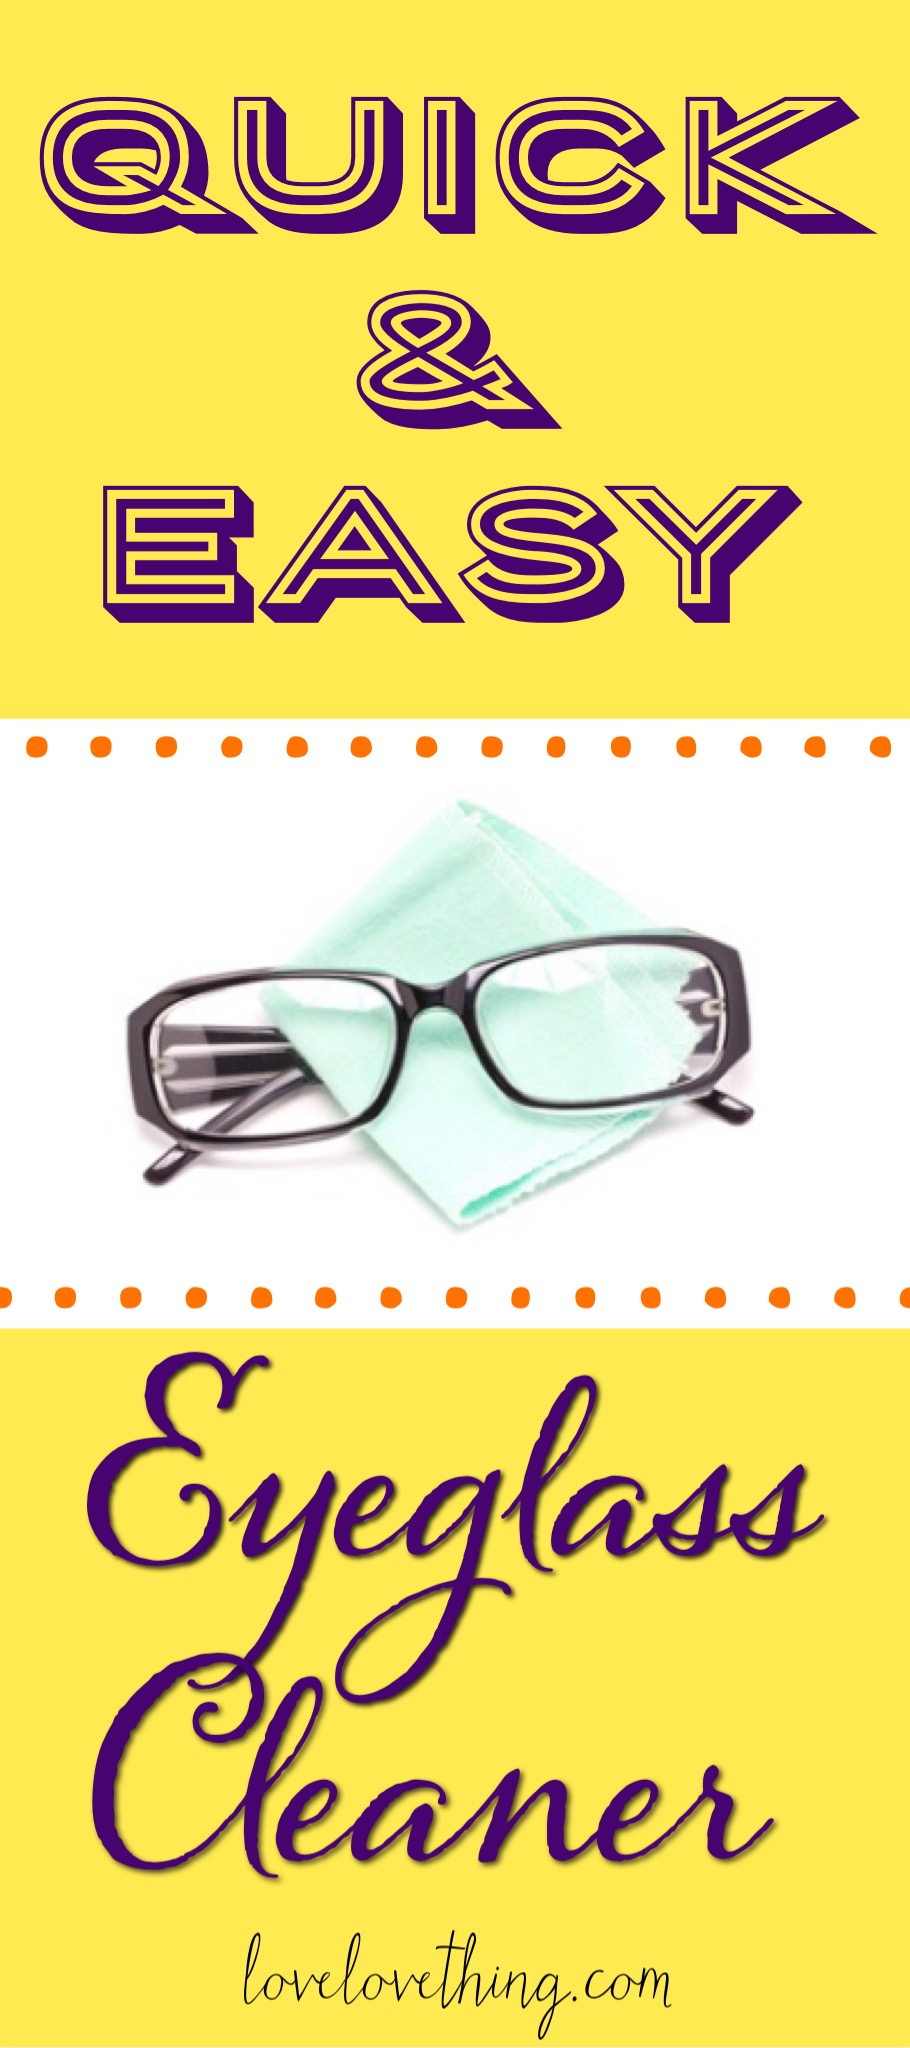 One of the easiest things you can make yourself - homemade eyeglass cleaner!